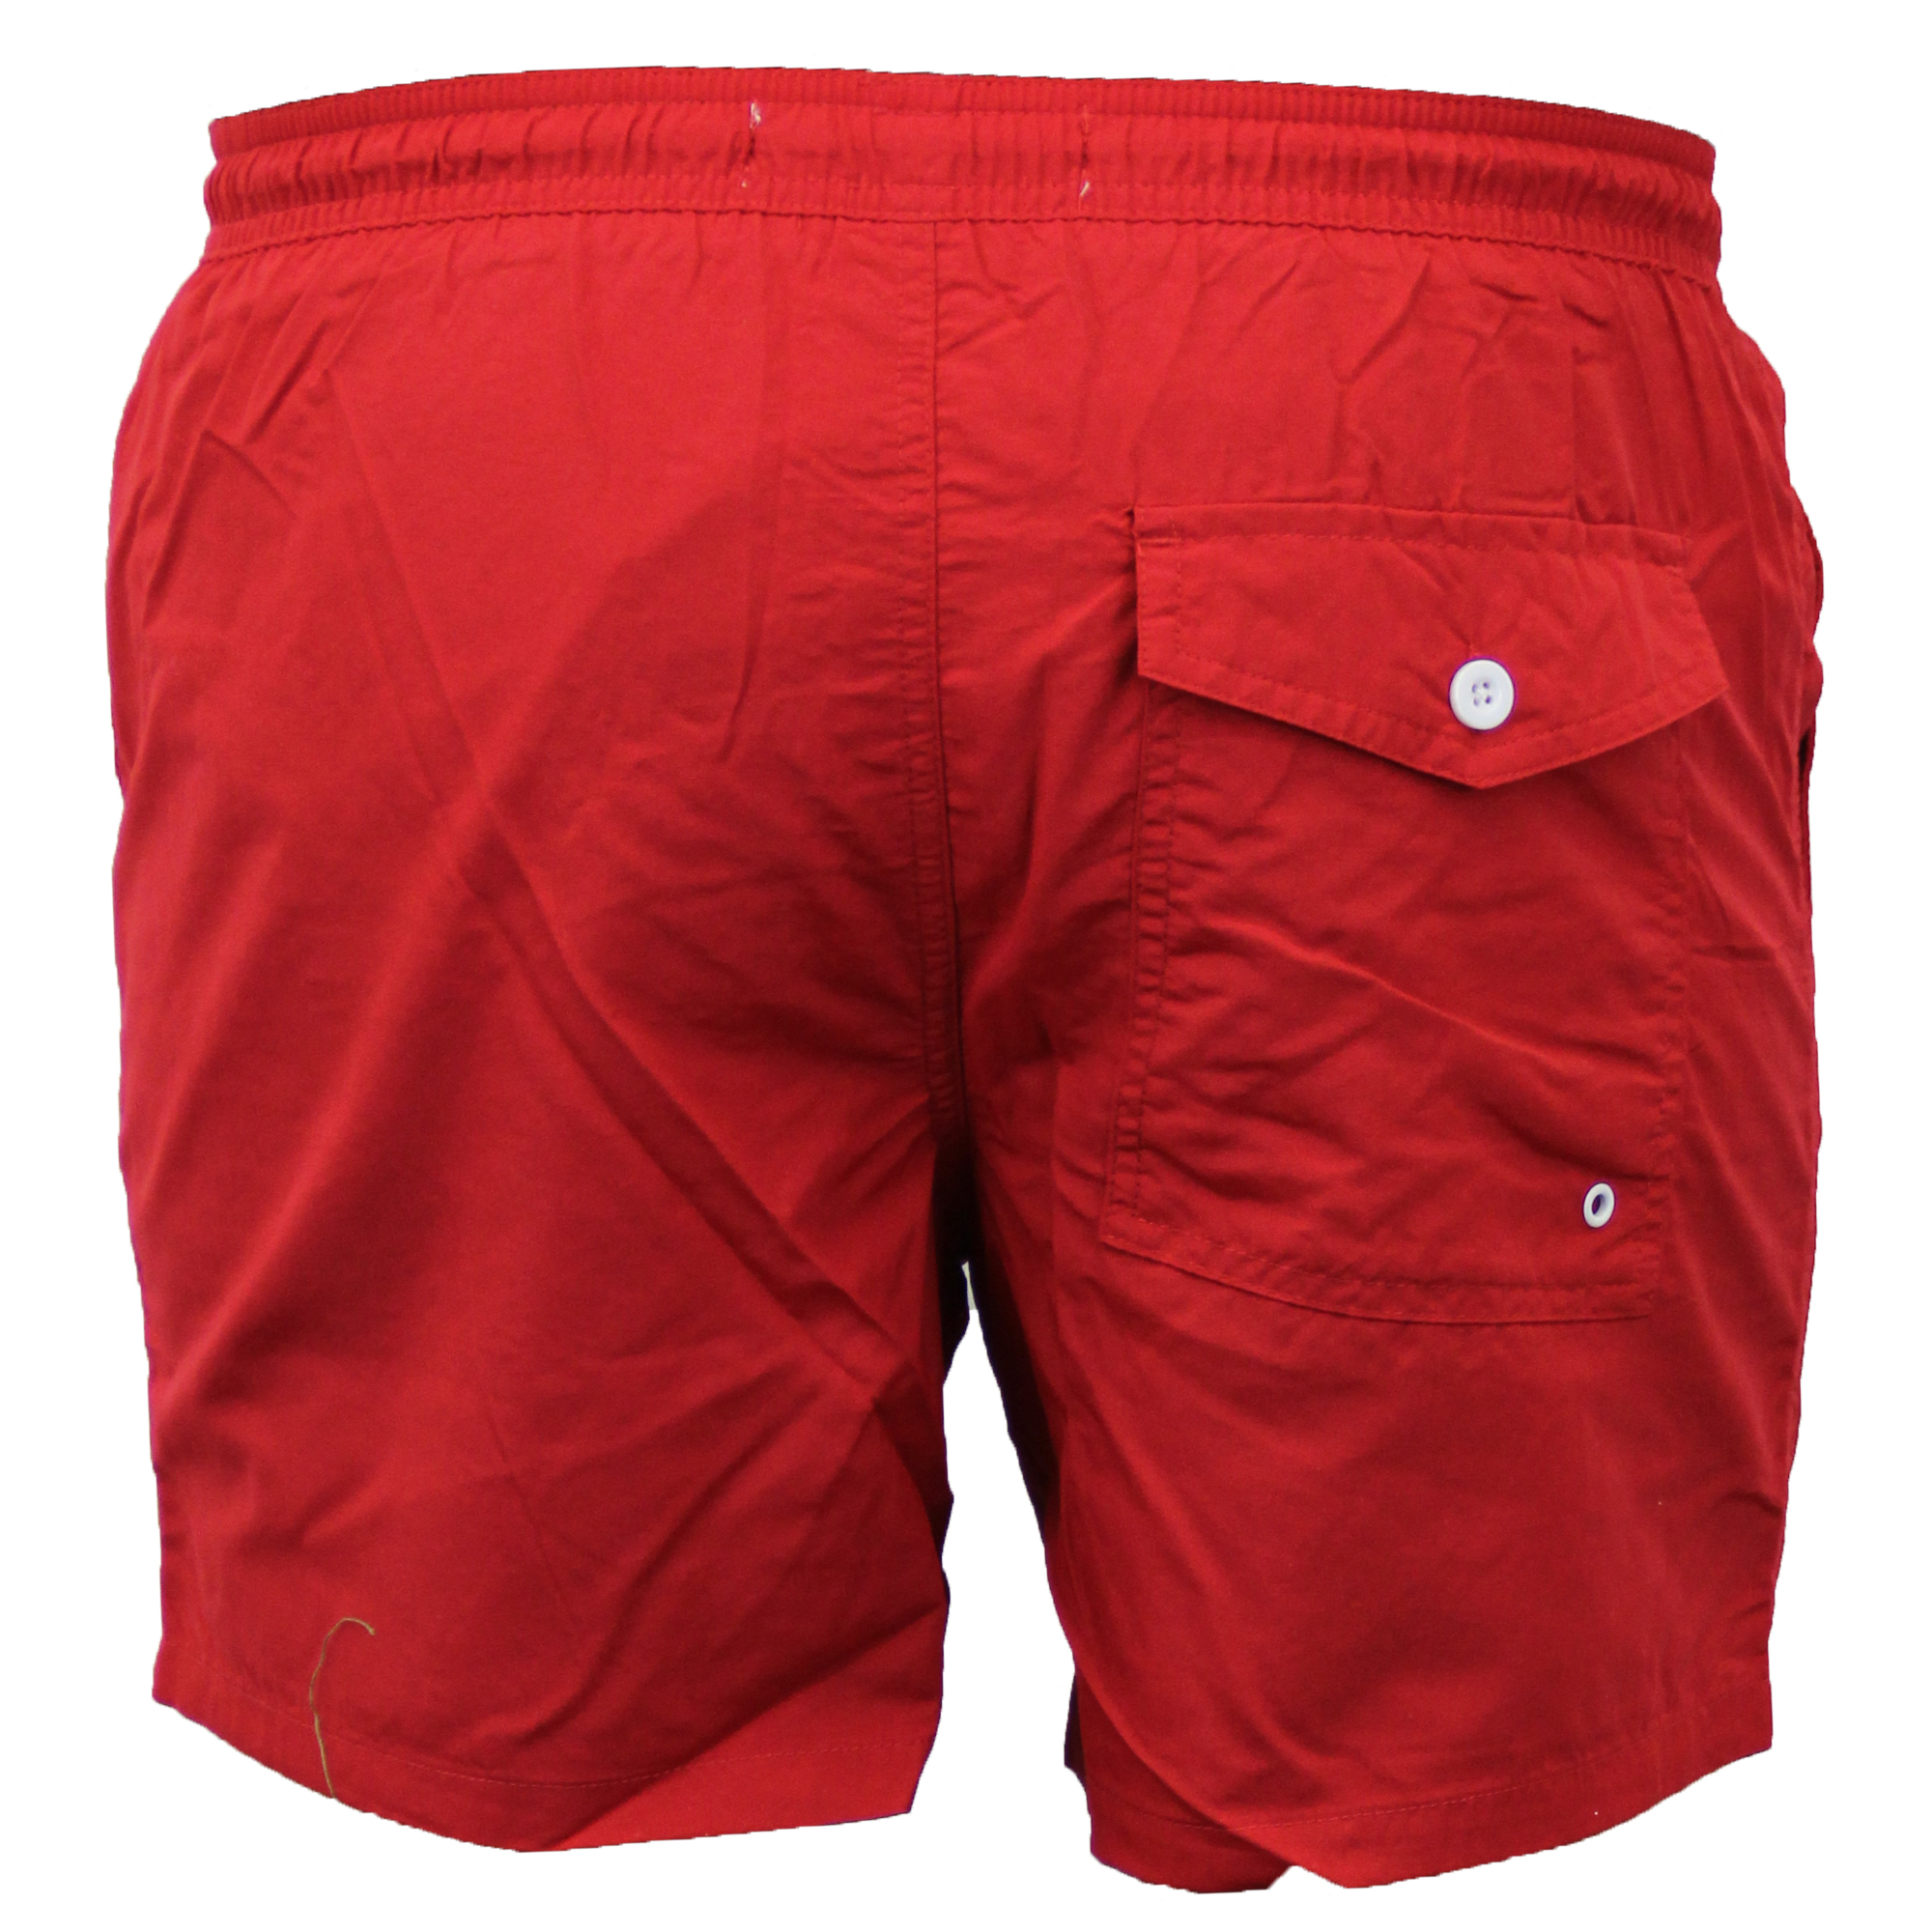 Mens-Swim-Board-Shorts-By-Brave-Soul-Mesh-Lined-New thumbnail 63